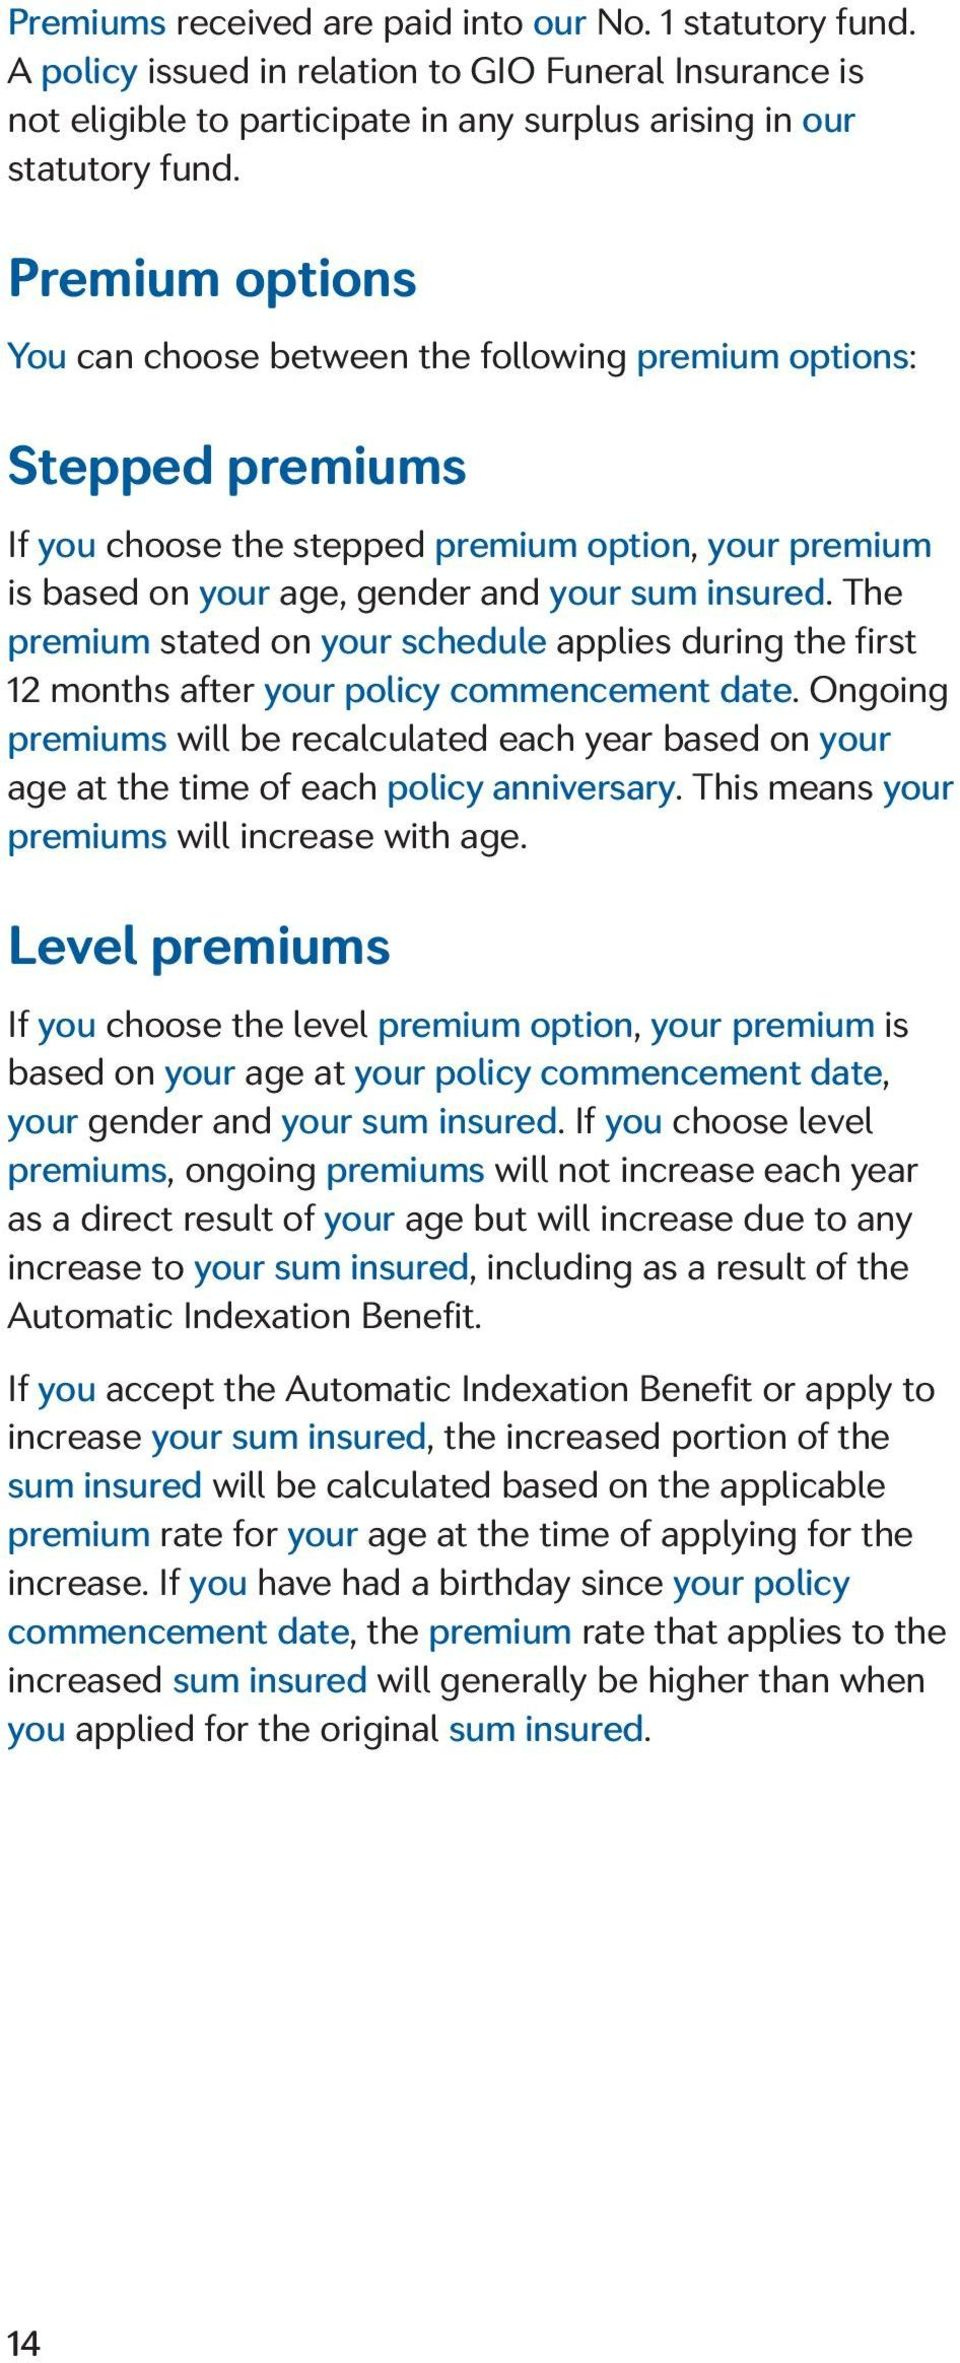 The premium stated on your schedule applies during the first 12 months after your policy commencement date.